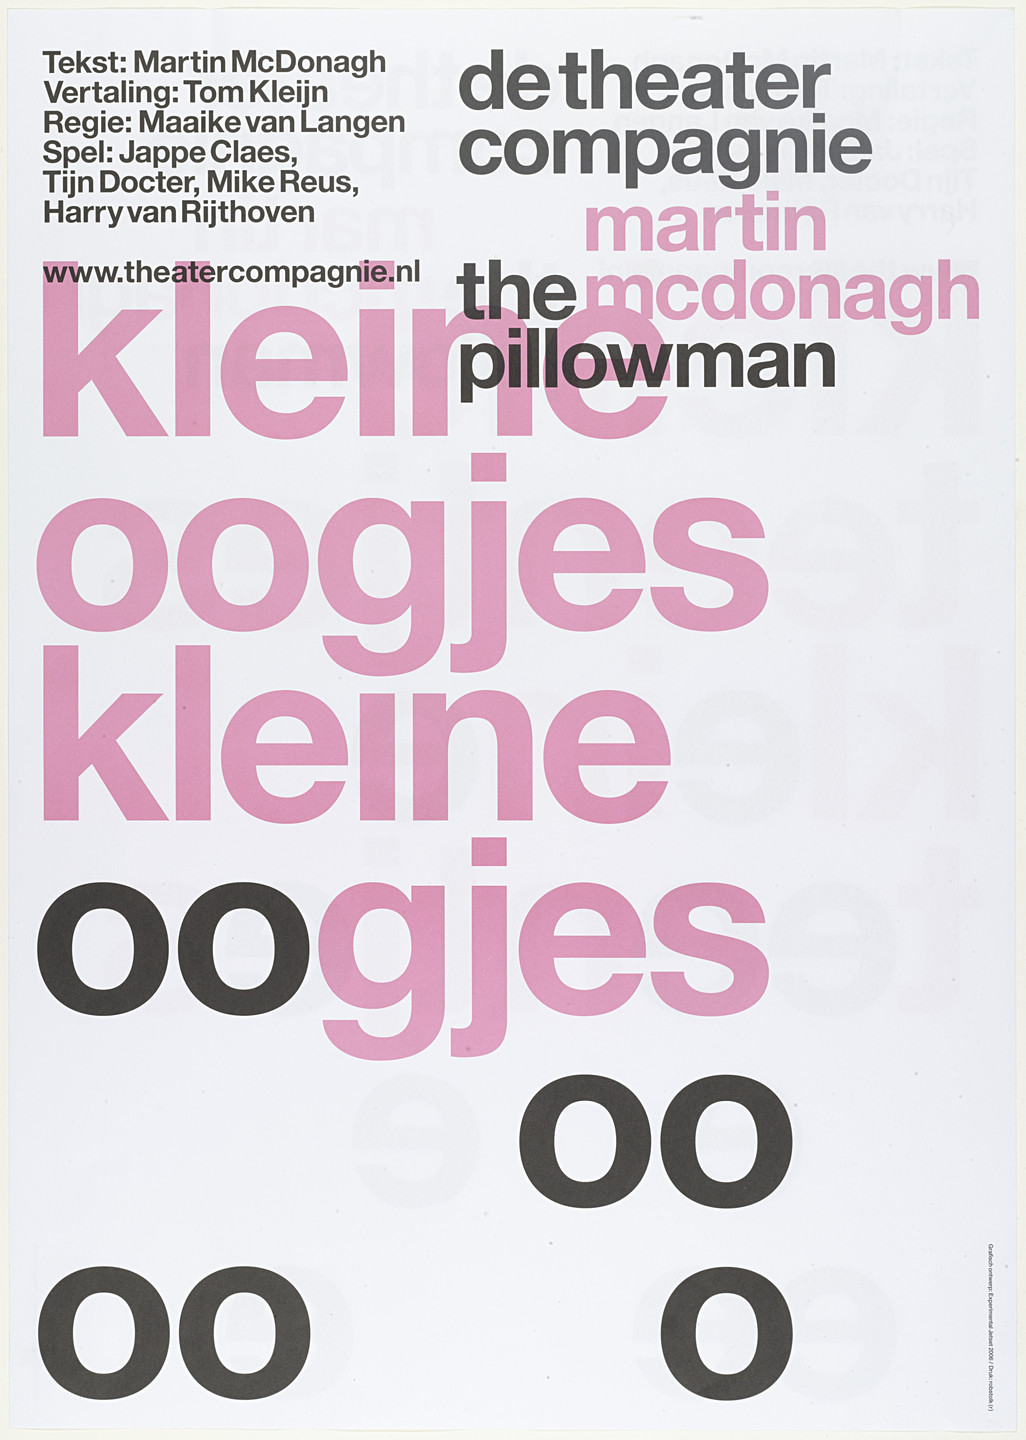 Experimental Jetset. De Theatercompagnie The Pillowman. 2005